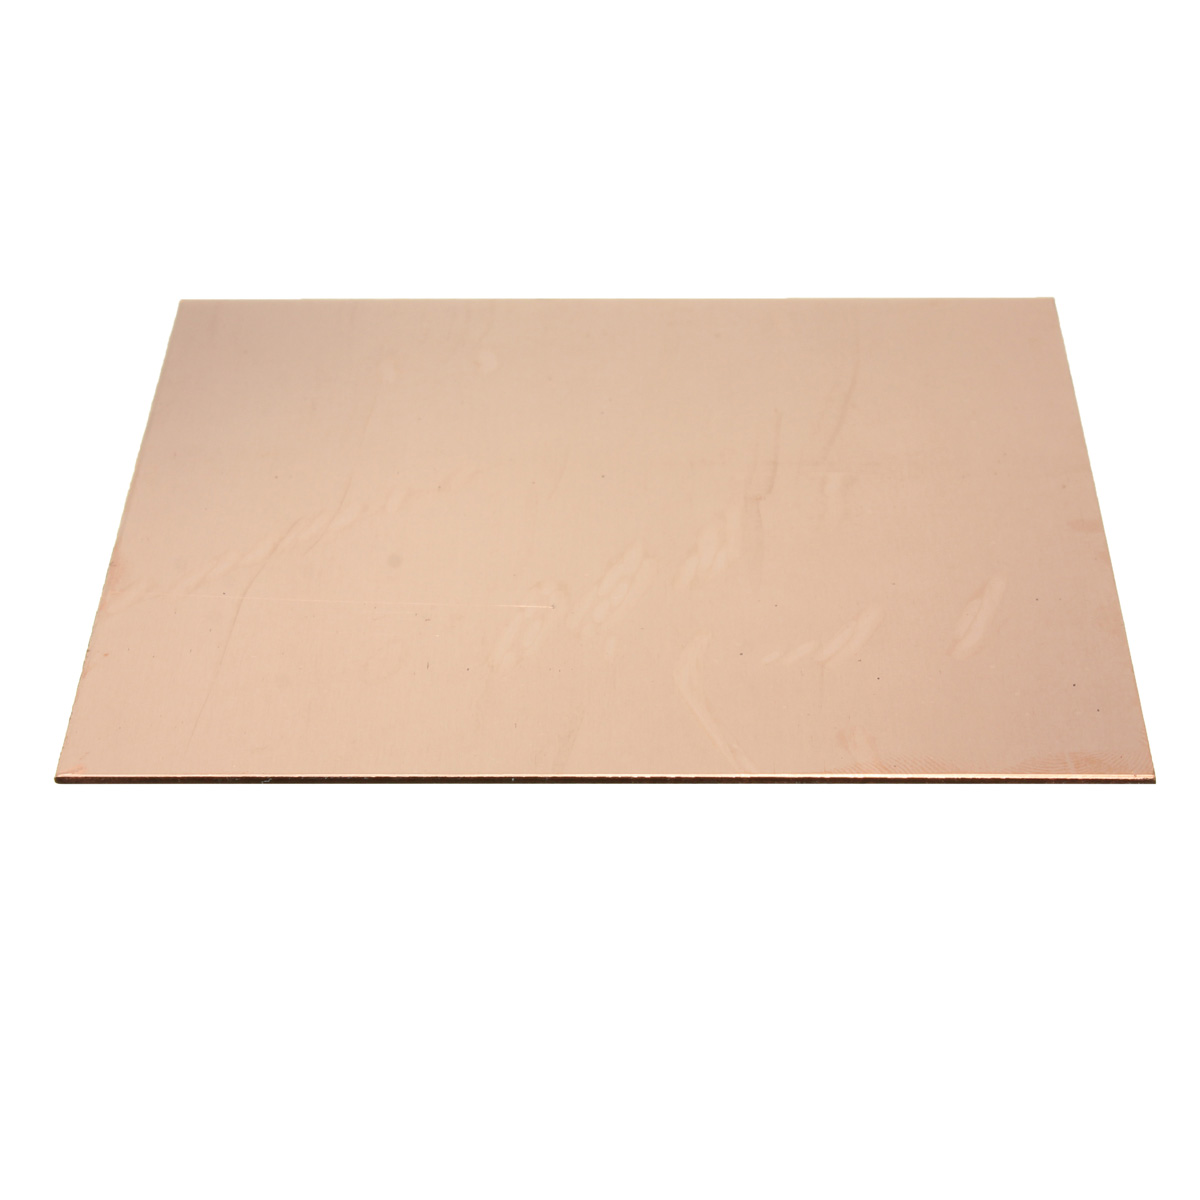 1pc 99.9% Pure Copper Sheet Metal Plate 1mm*100mm*100mm for Welding Brazing|Welding Rods|Tools - AliExpress